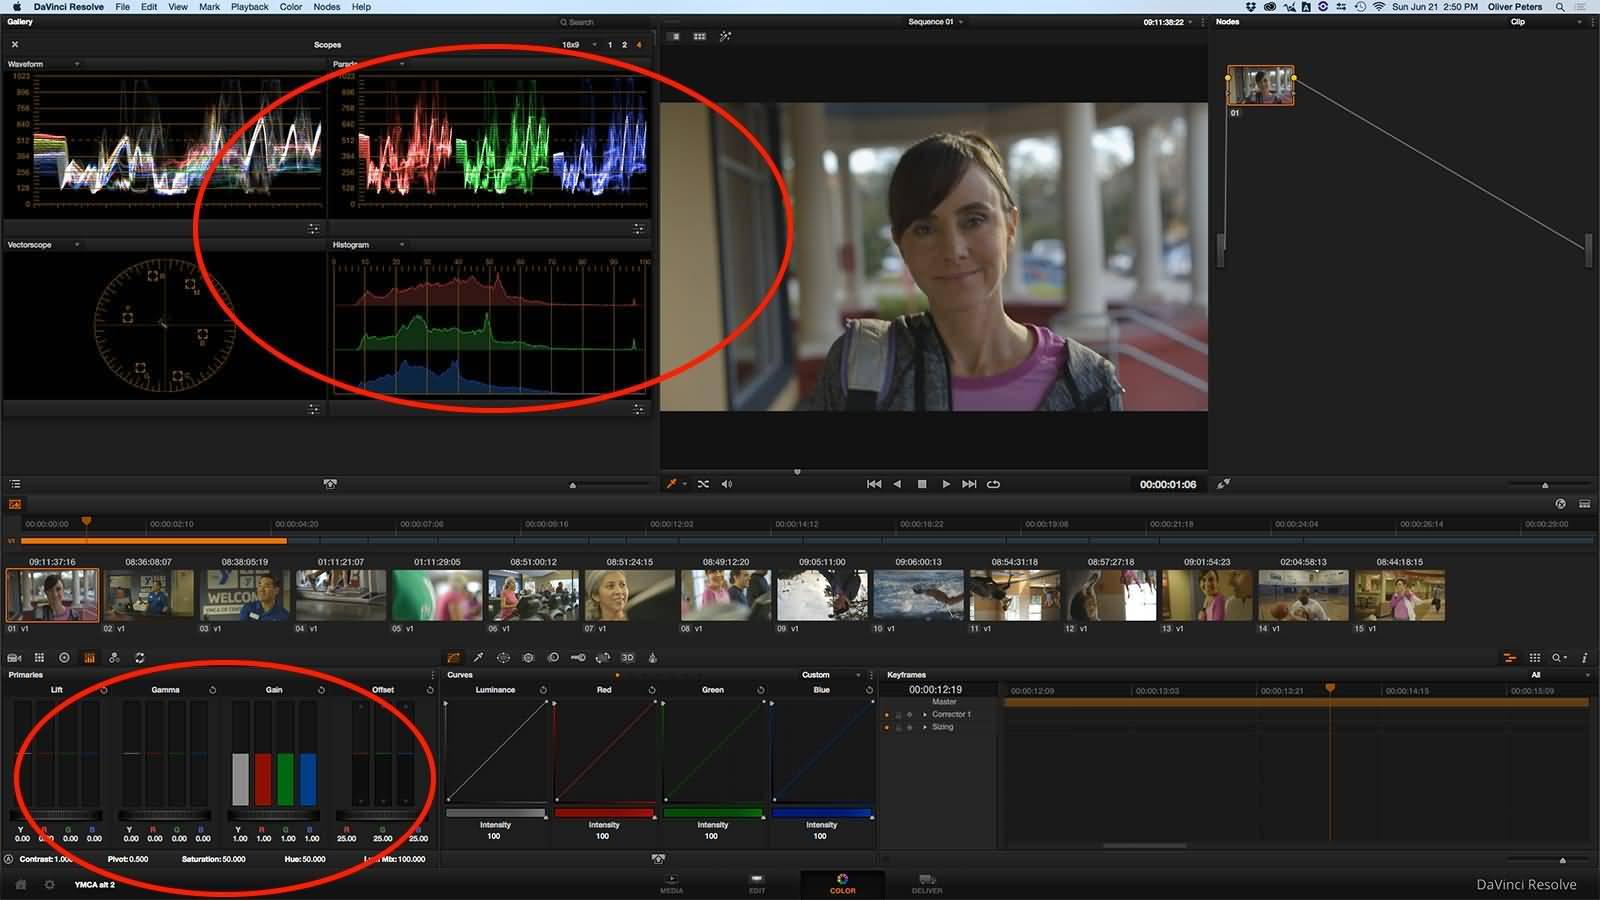 davinci-resolve-primary-sliders